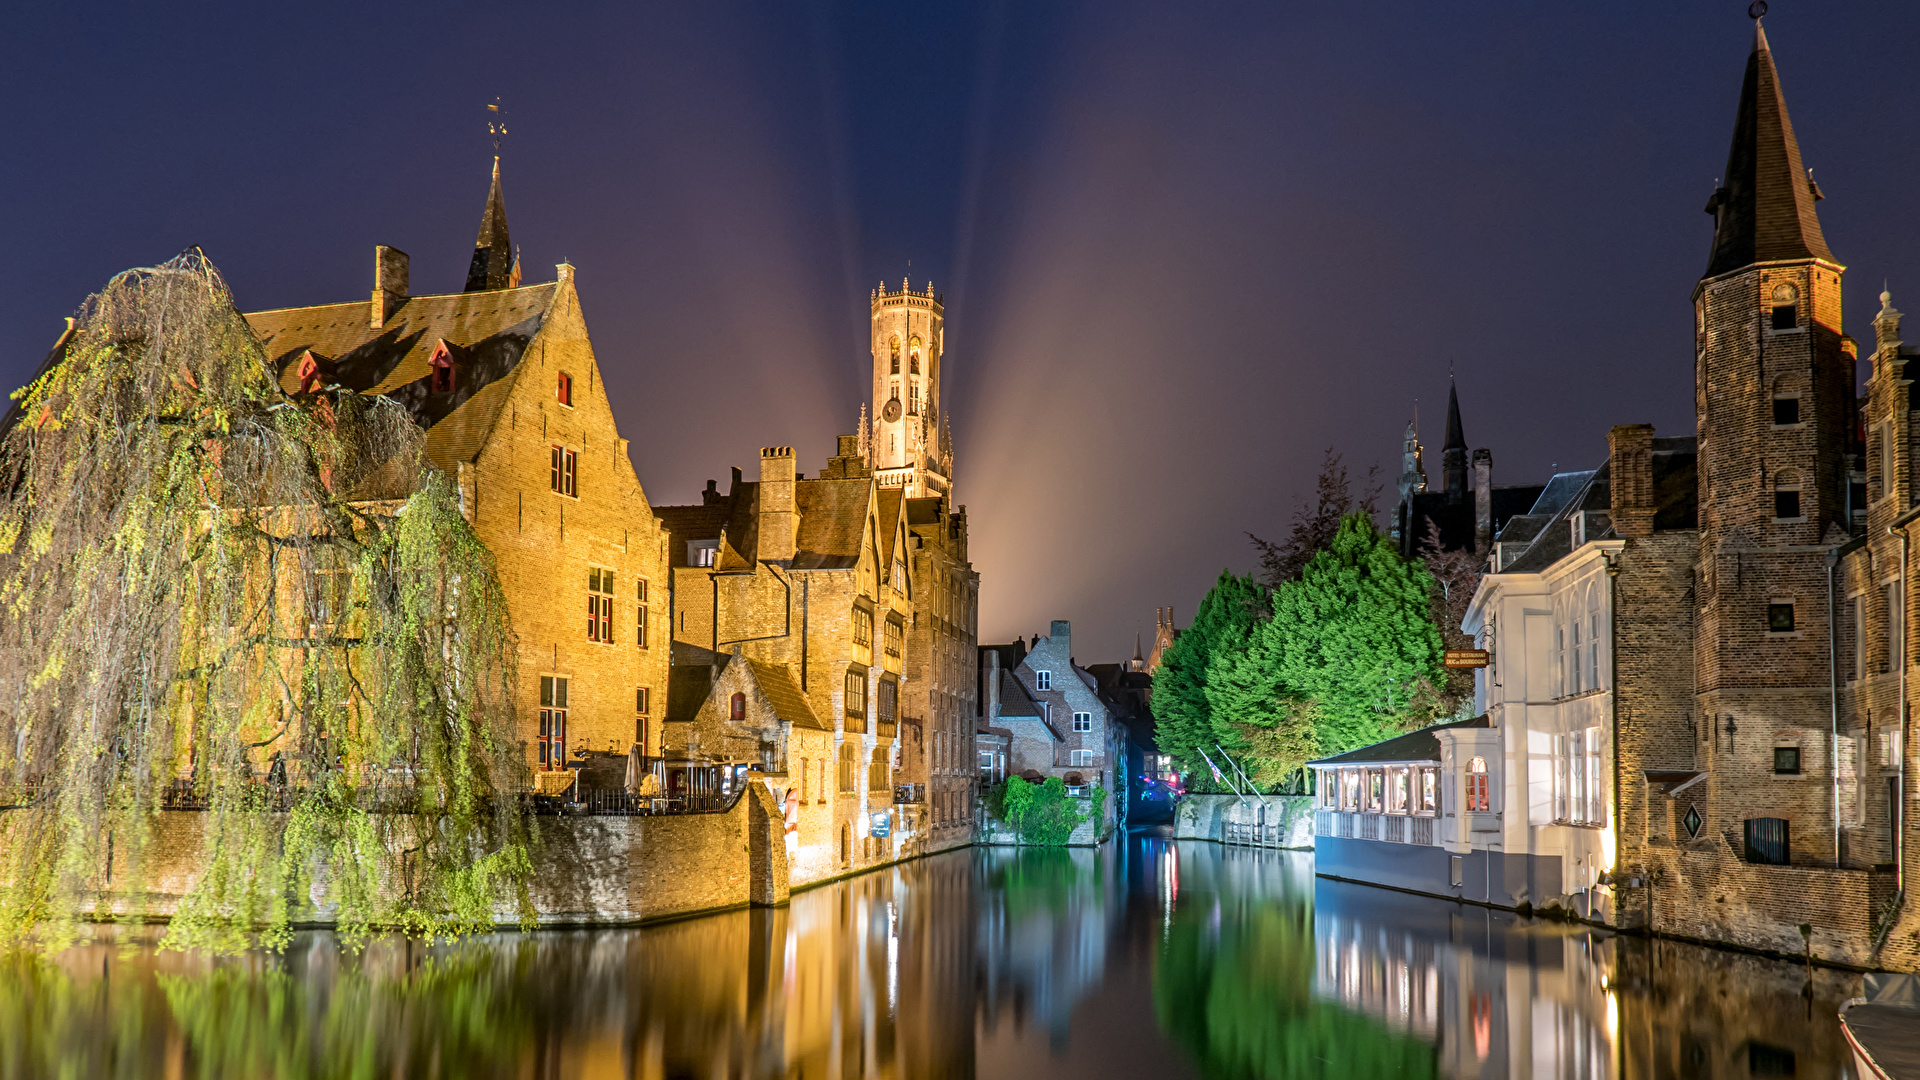 Wallpaper Cities Belgium Bruges Rivers Houses night time 1920x1080 1920x1080